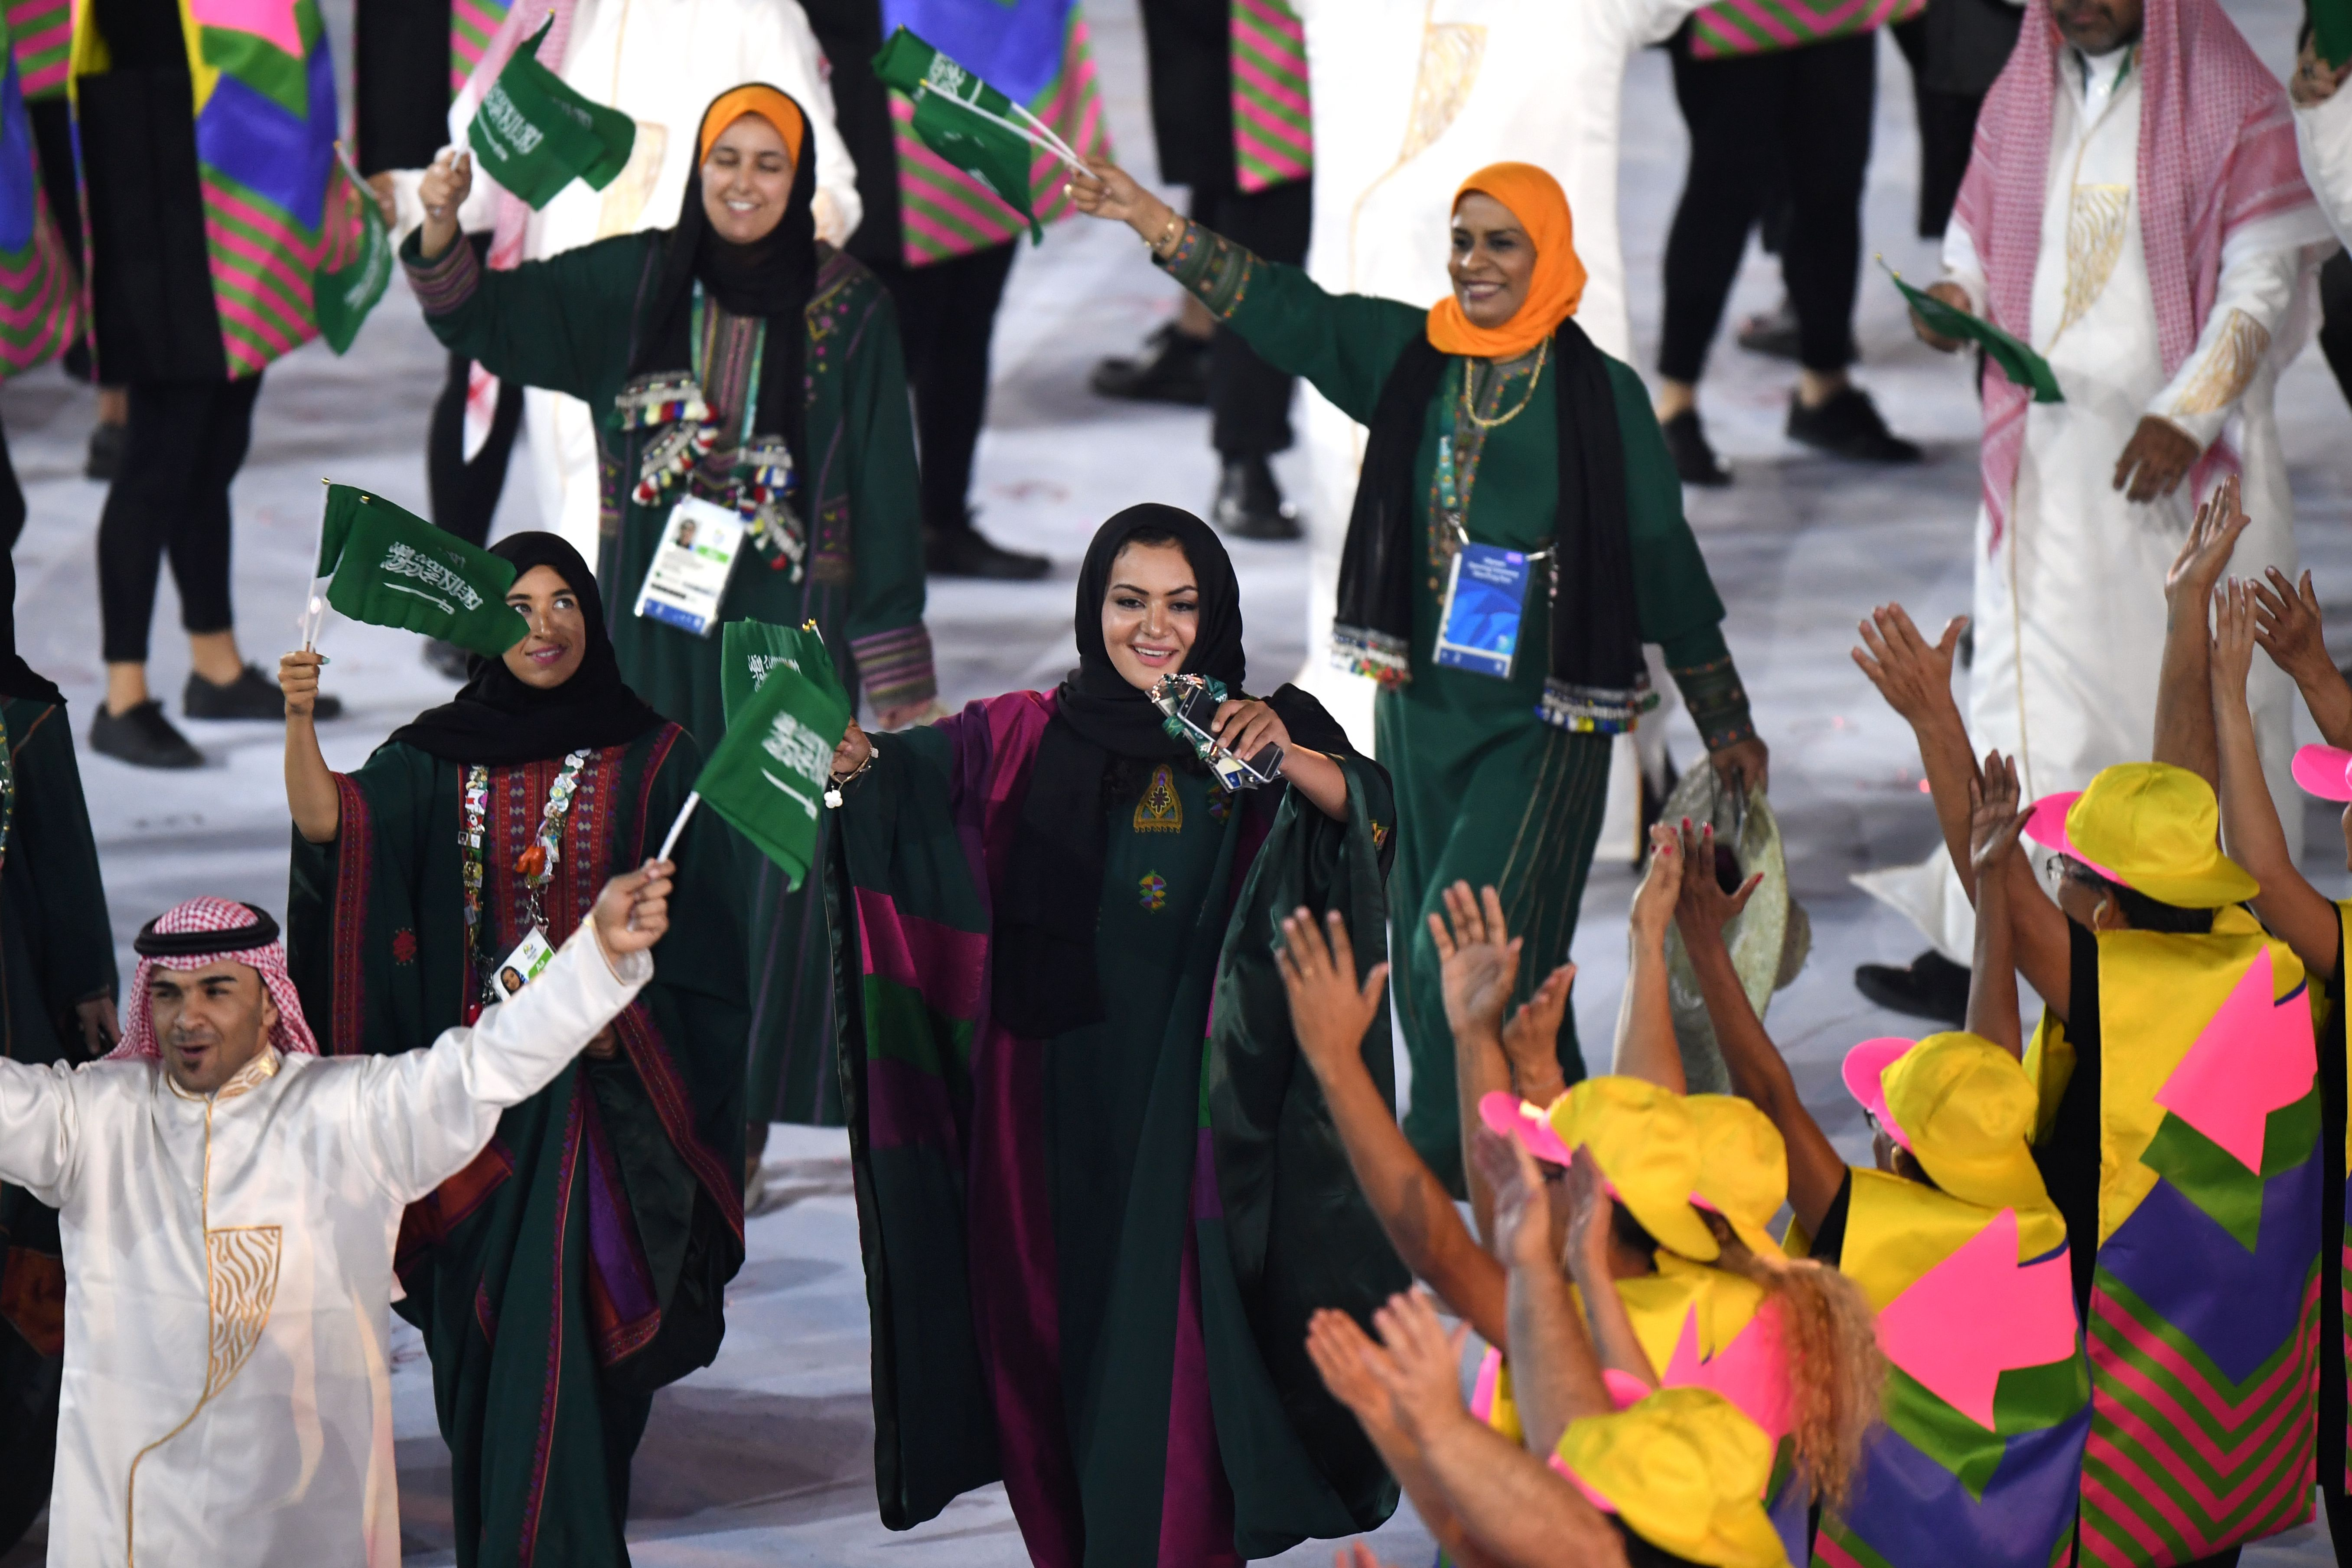 Saudi Arabia's delegation parades during the opening ceremony of the Rio 2016 Olympic Games at the Maracana stadium in Rio de Janeiro on August 5, 2016.